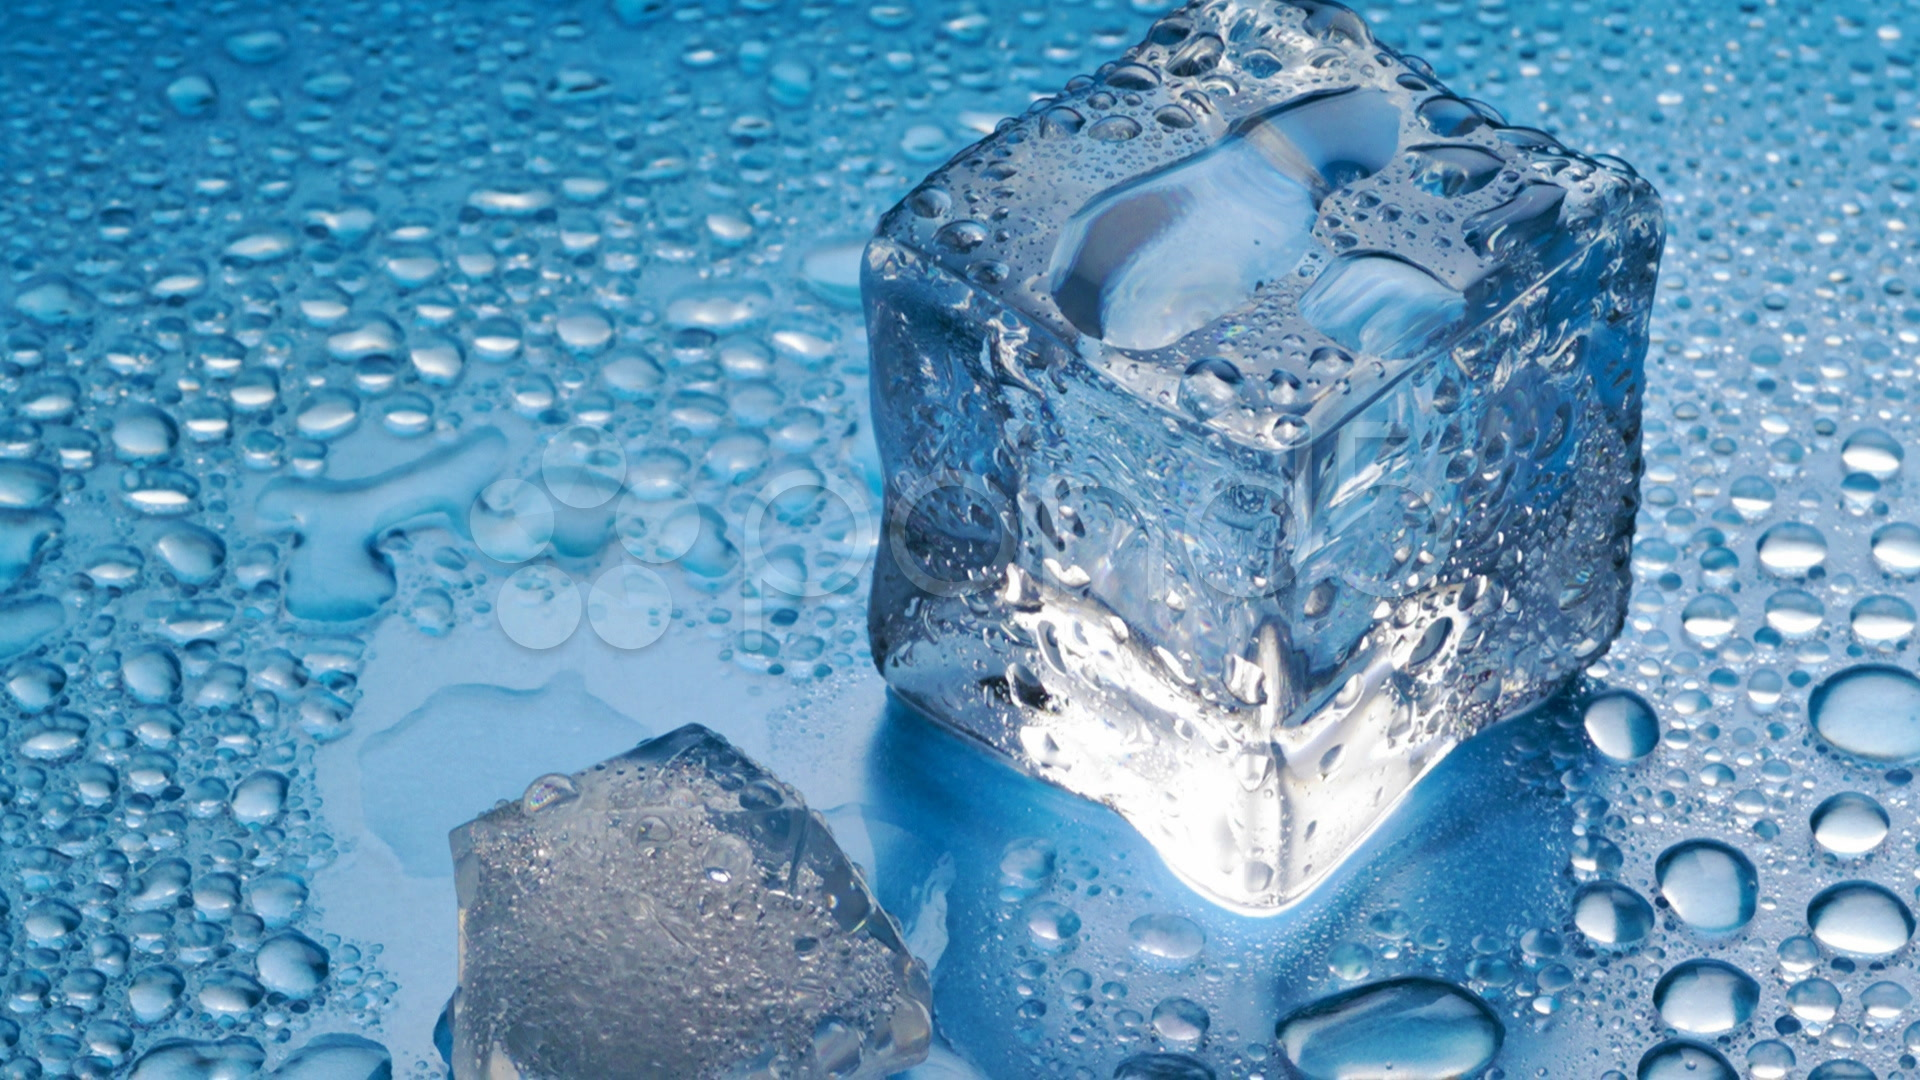 Melting ice cube wallpaper Wallpapers Crazy 1920x1080